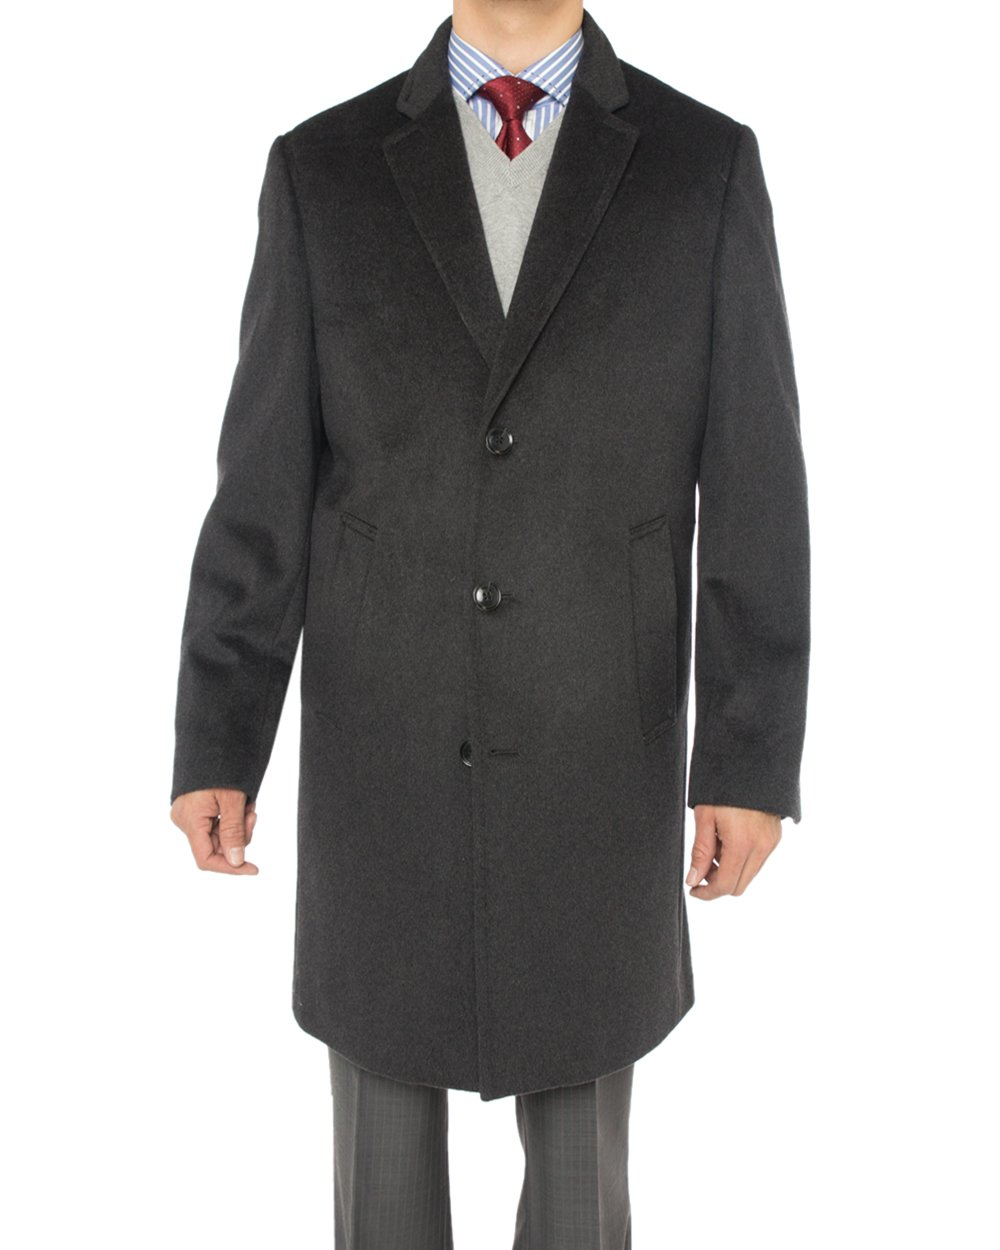 Luciano Natazzi Men's Cashmere Wool Overcoat Knee Length Trench Coat Topcoat (52 US - 62 EU, Charcoal Gray)